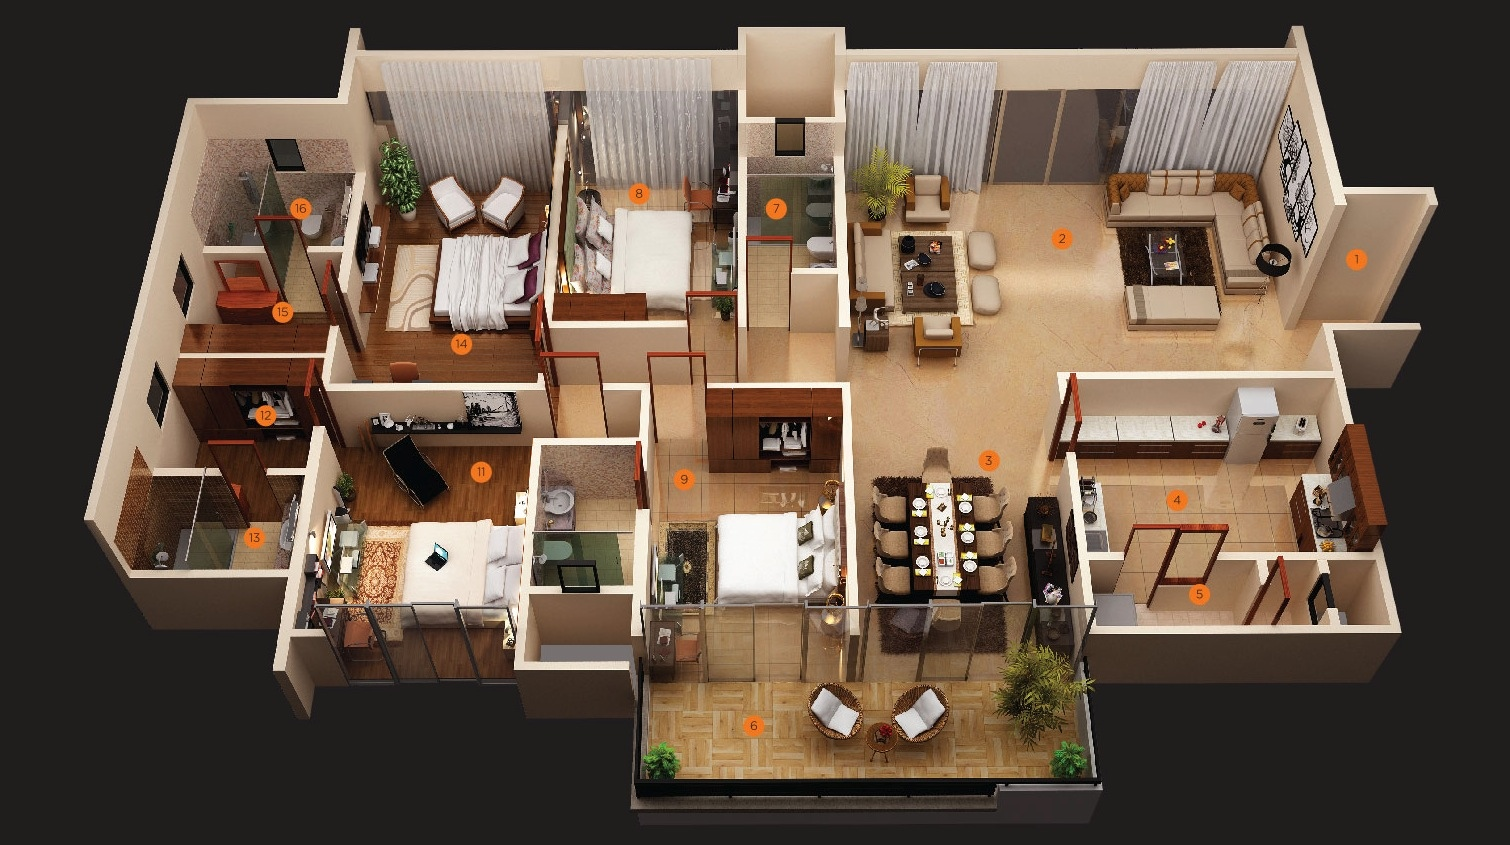 4 bedroom apartment house plans - Four bedroom building plan ...